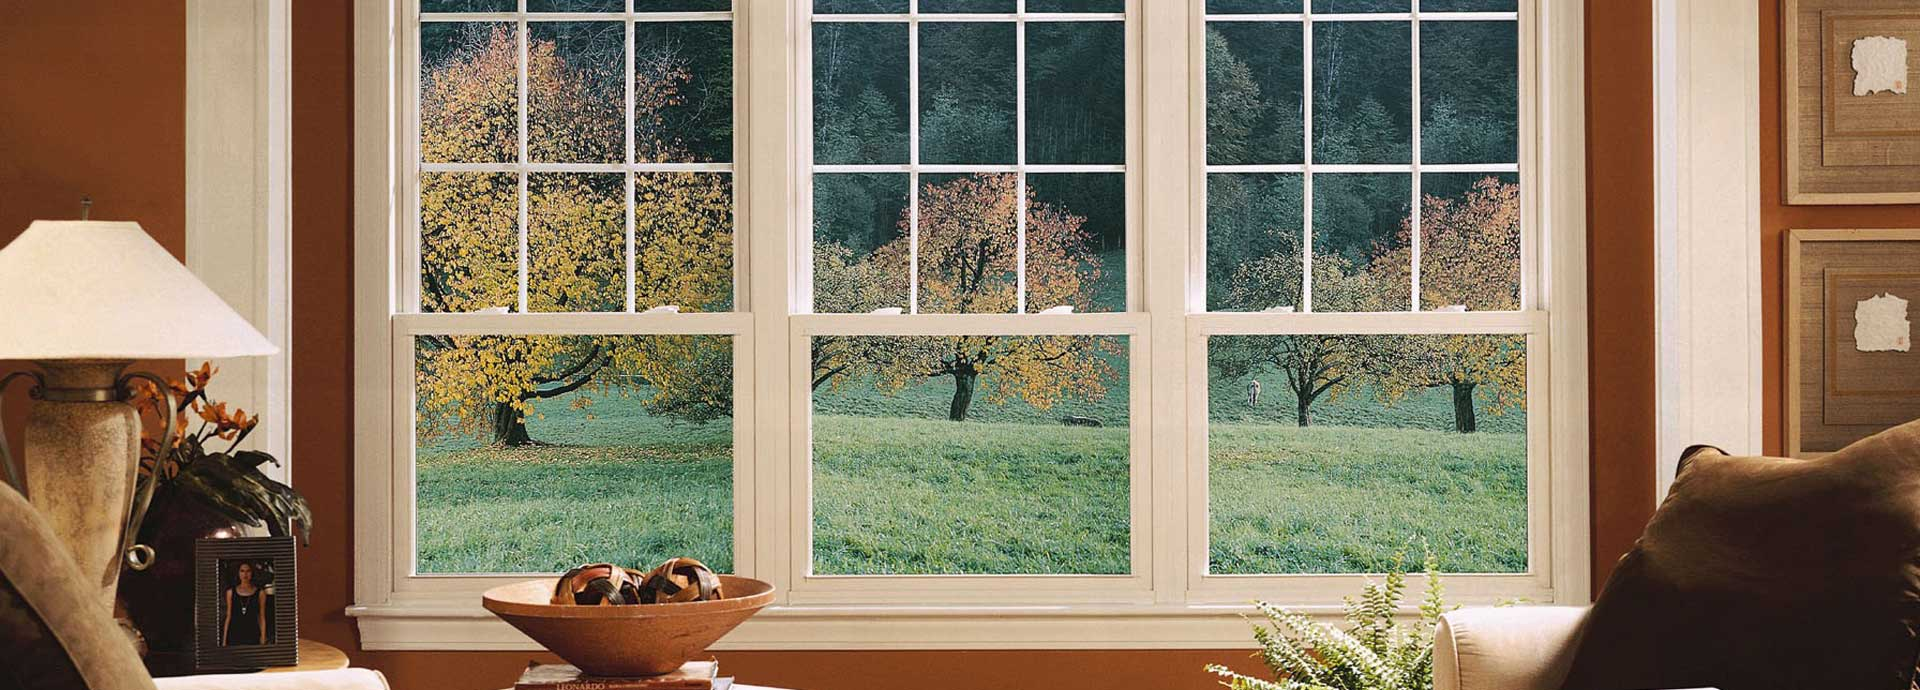 Replacement Windows From Window Depot